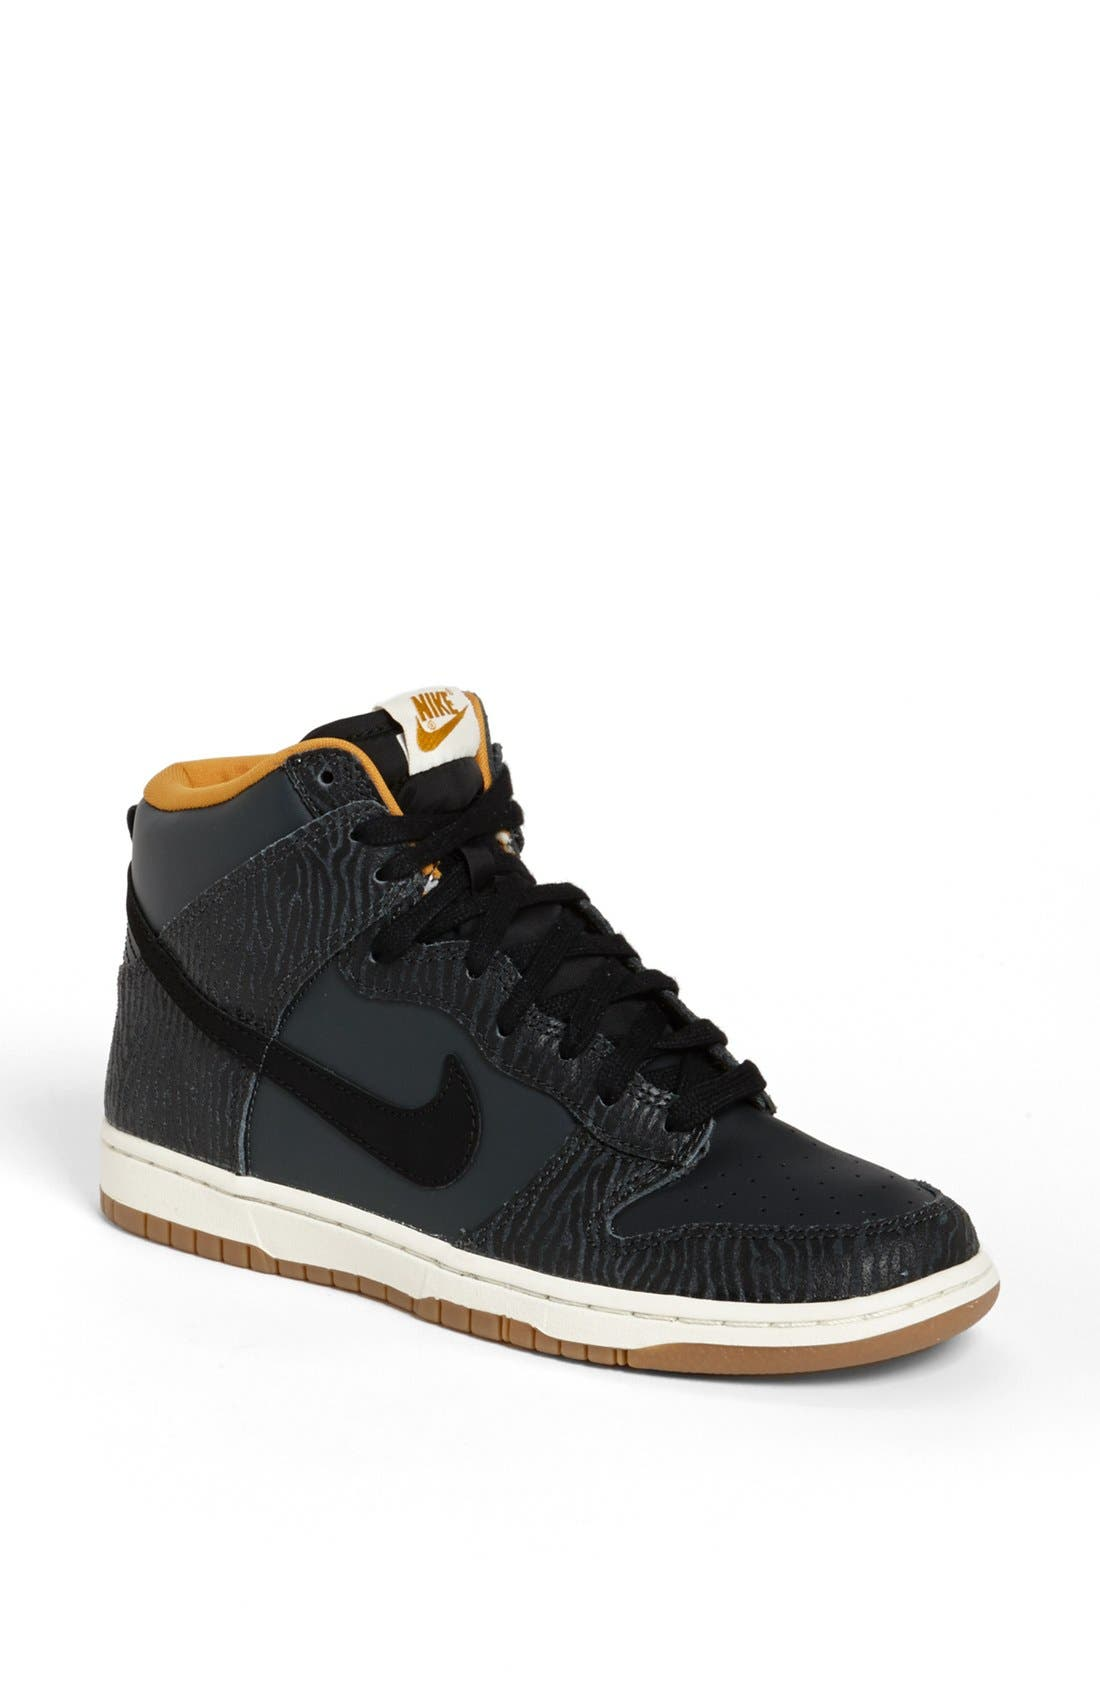 Alternate Image 1 Selected - Nike 'Dunk Hi - Skinny Print' High Top Basketball Sneaker